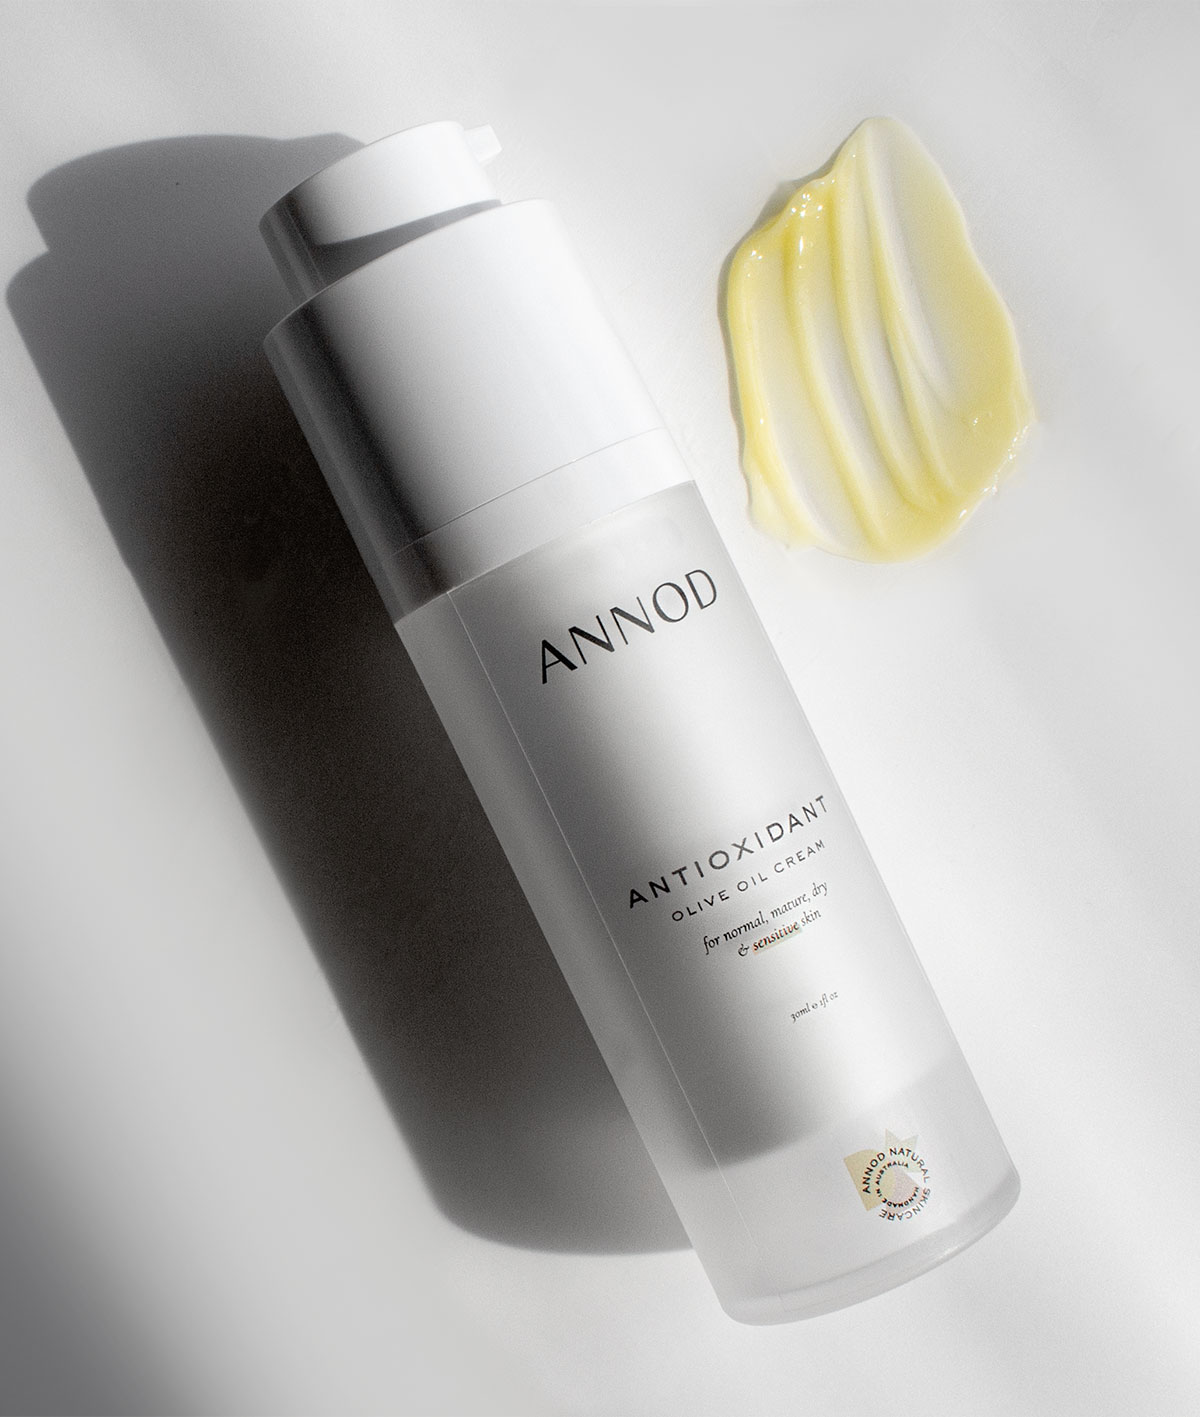 Texture and a bottle of Antioxidant Olive Oil cream, 30ml